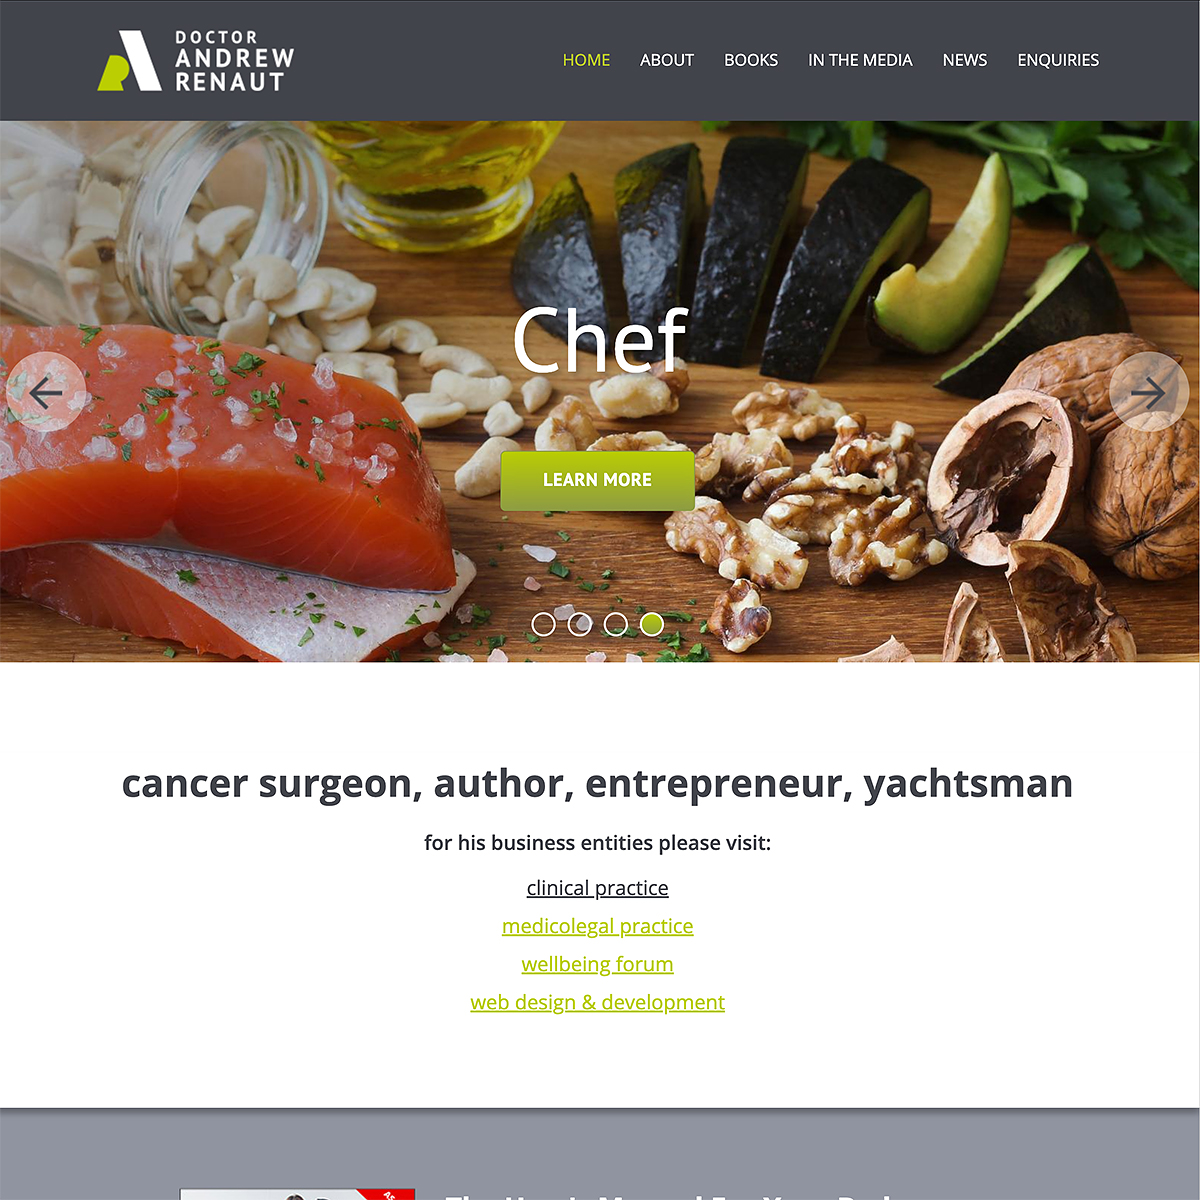 Dr Andrew Renaut - Homepage Banner - Chef